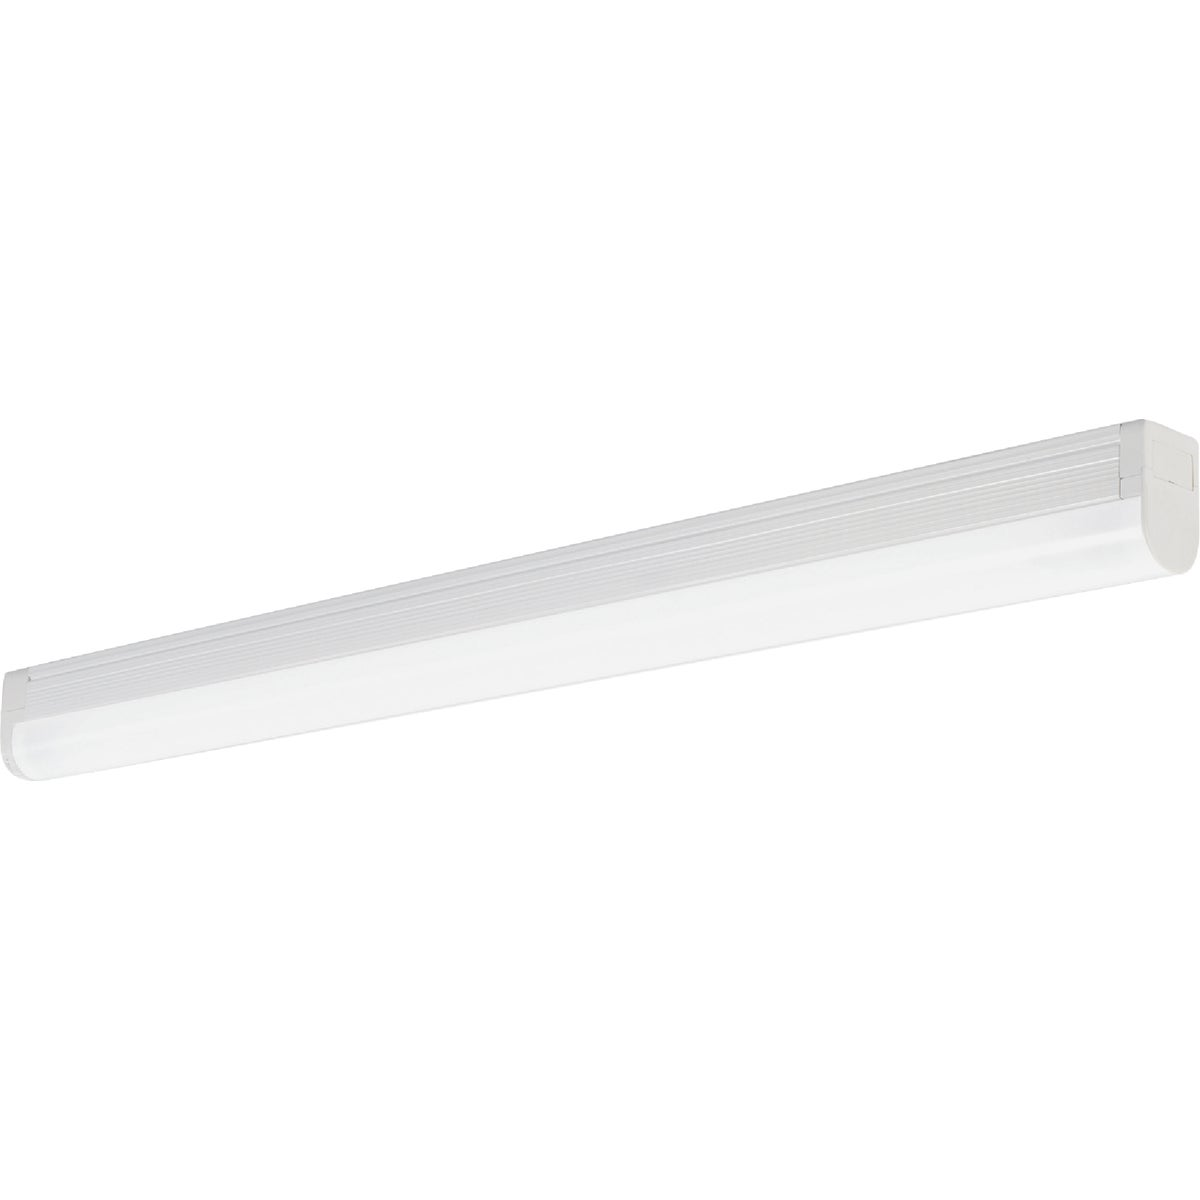 "21"" UNDERCABINET LIGHT - GLS9013-WH-I by Good Earth Lighting"